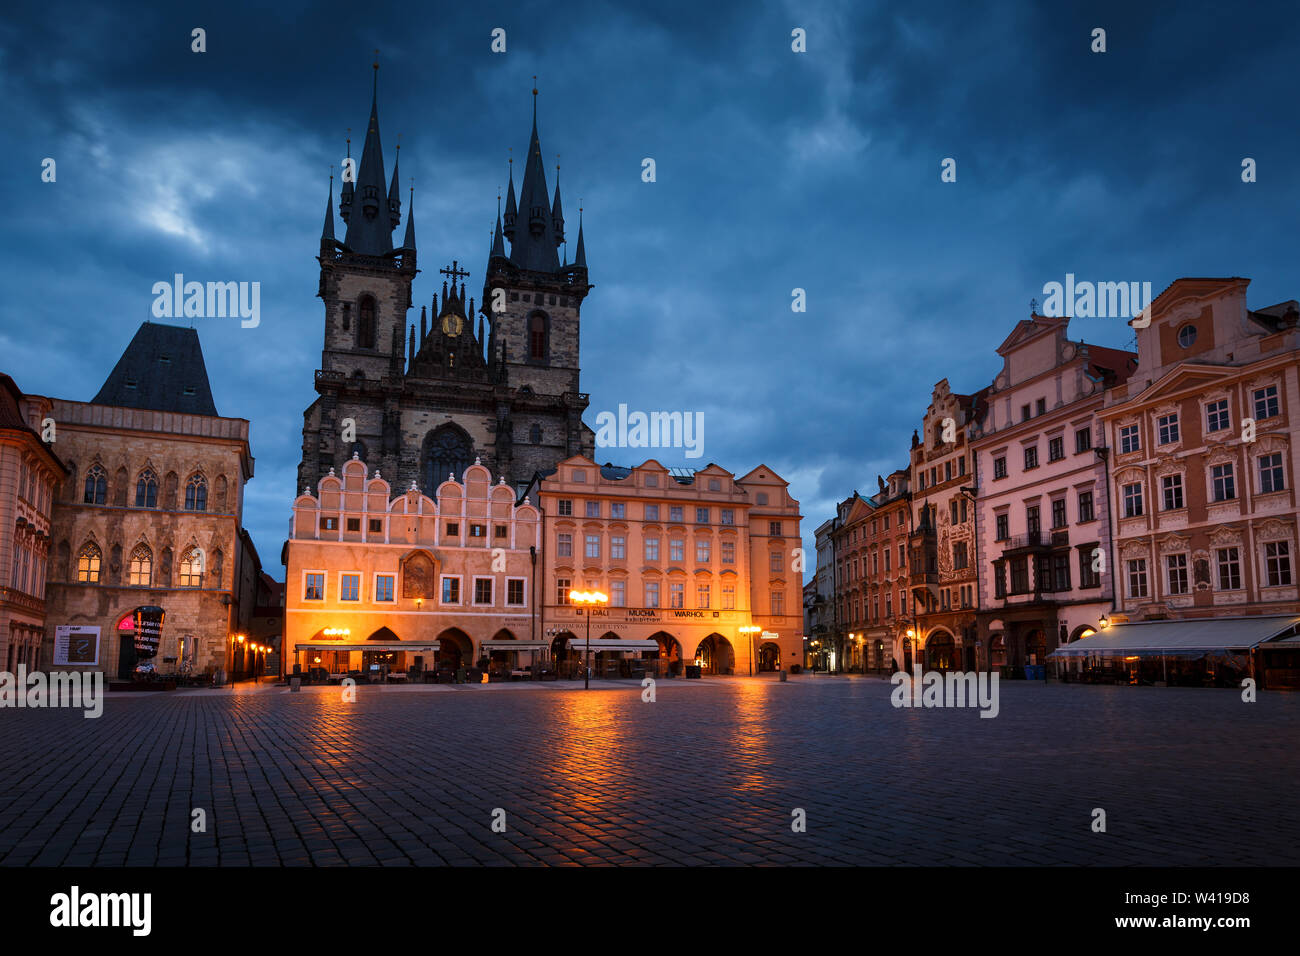 Prague, Czech Republic - March 15, 2019: Dawn in the Old Town Square in the historical city centre of Prague. Stock Photo